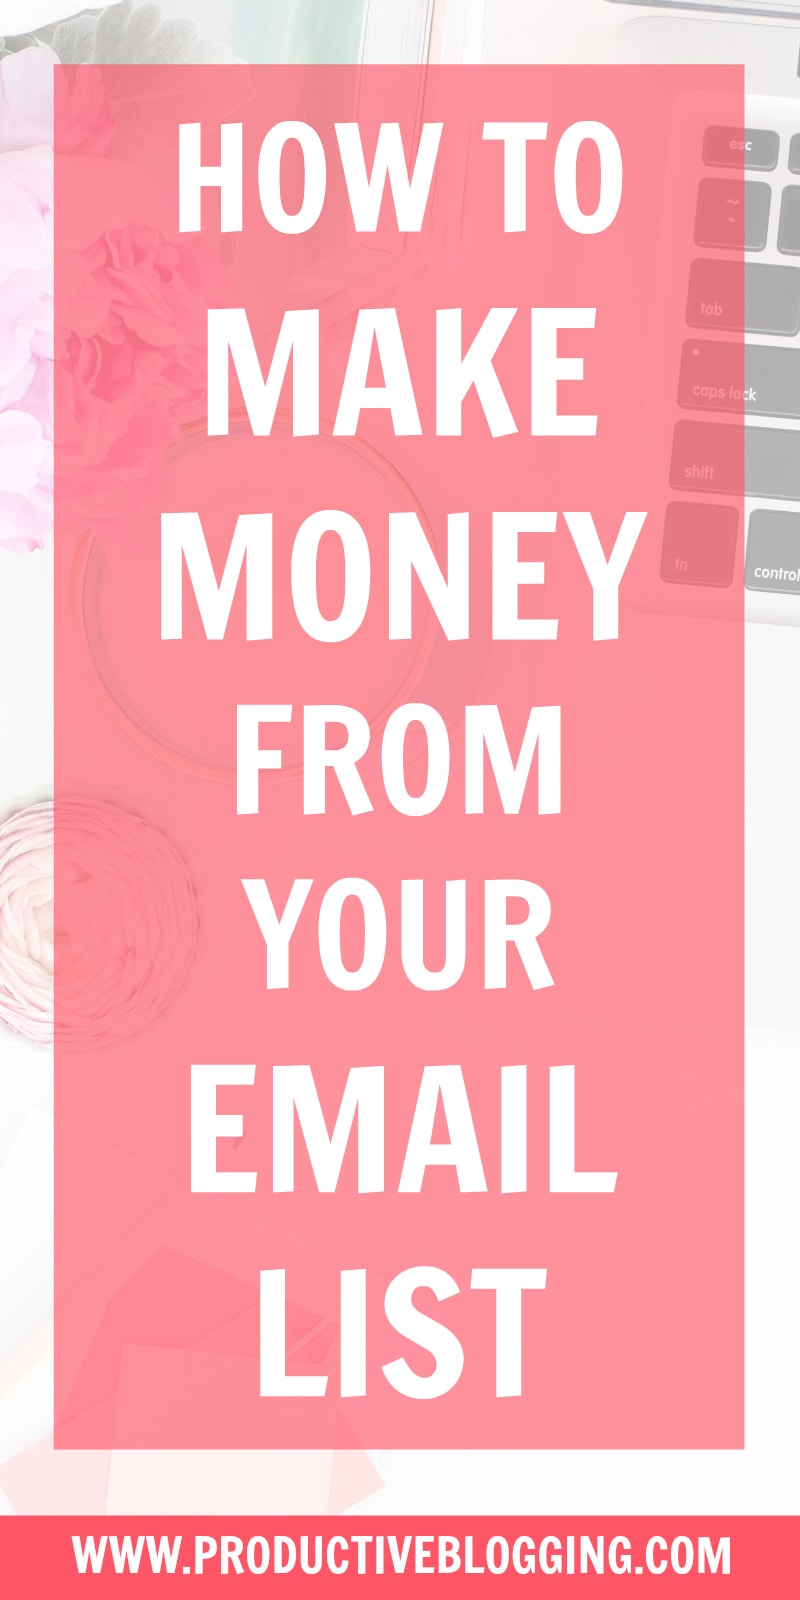 Your email list is one of your most valuable assets as a blogger (there's a reason they say 'the money is in the list') But how exactly do you go about turning your list into cash? Here's how to make money from your email list… #makemoneyblogging #makemoneywithemailmarketing #makemoneywithemail #emailmarketing #emailmarketingtips #blogging #bloggers #blogtips #bloggingtips #emaillist #emaillistgrowth #emaillistbuilding #emailsubscribers #productivitytips #productiveblogging#blogsmarternotharder